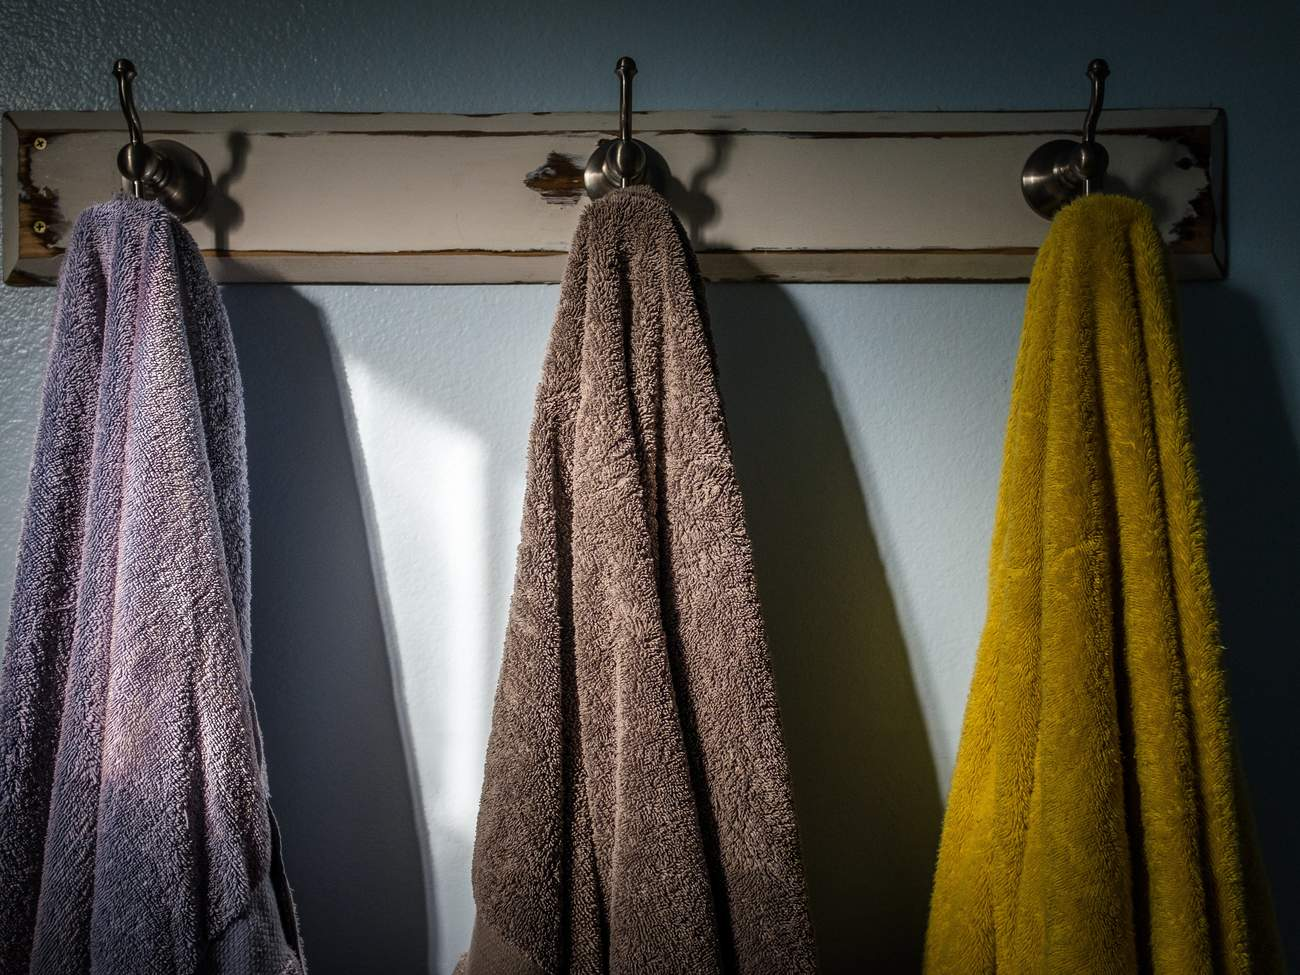 Towels Hanging On Hook Against Wall In Bathroom